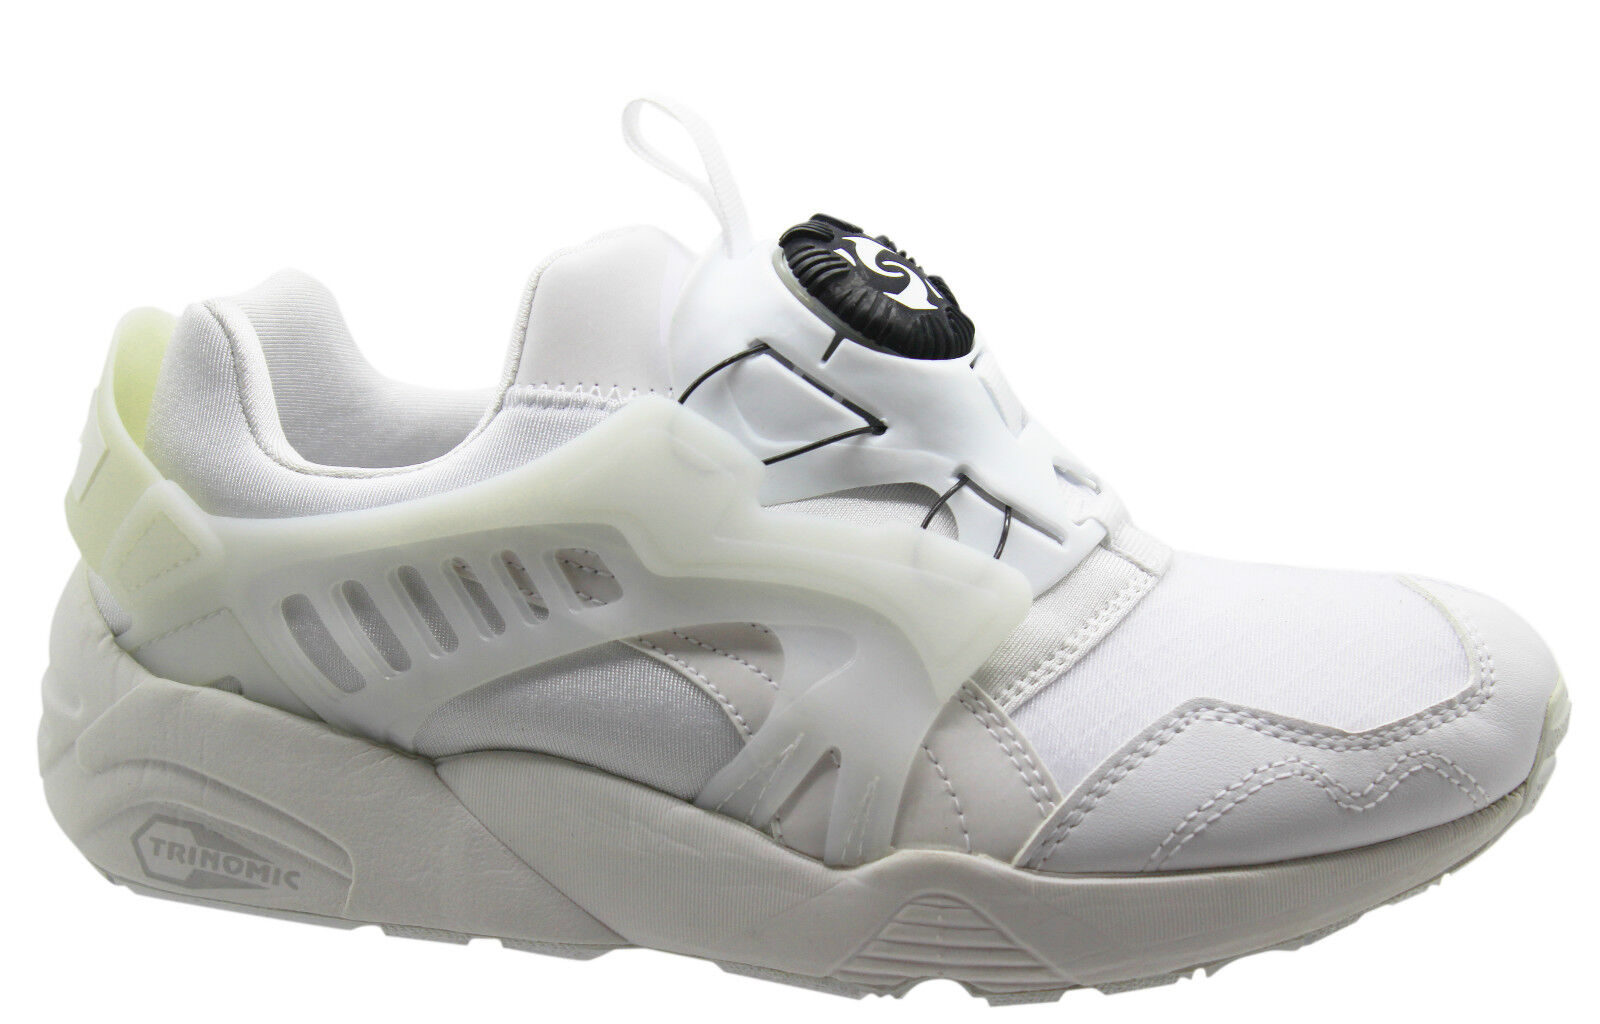 Puma Trinomic Disc Blaze White Black Modern Mens Trainers Slip On 358324 01 P3 The latest discount shoes for men and women